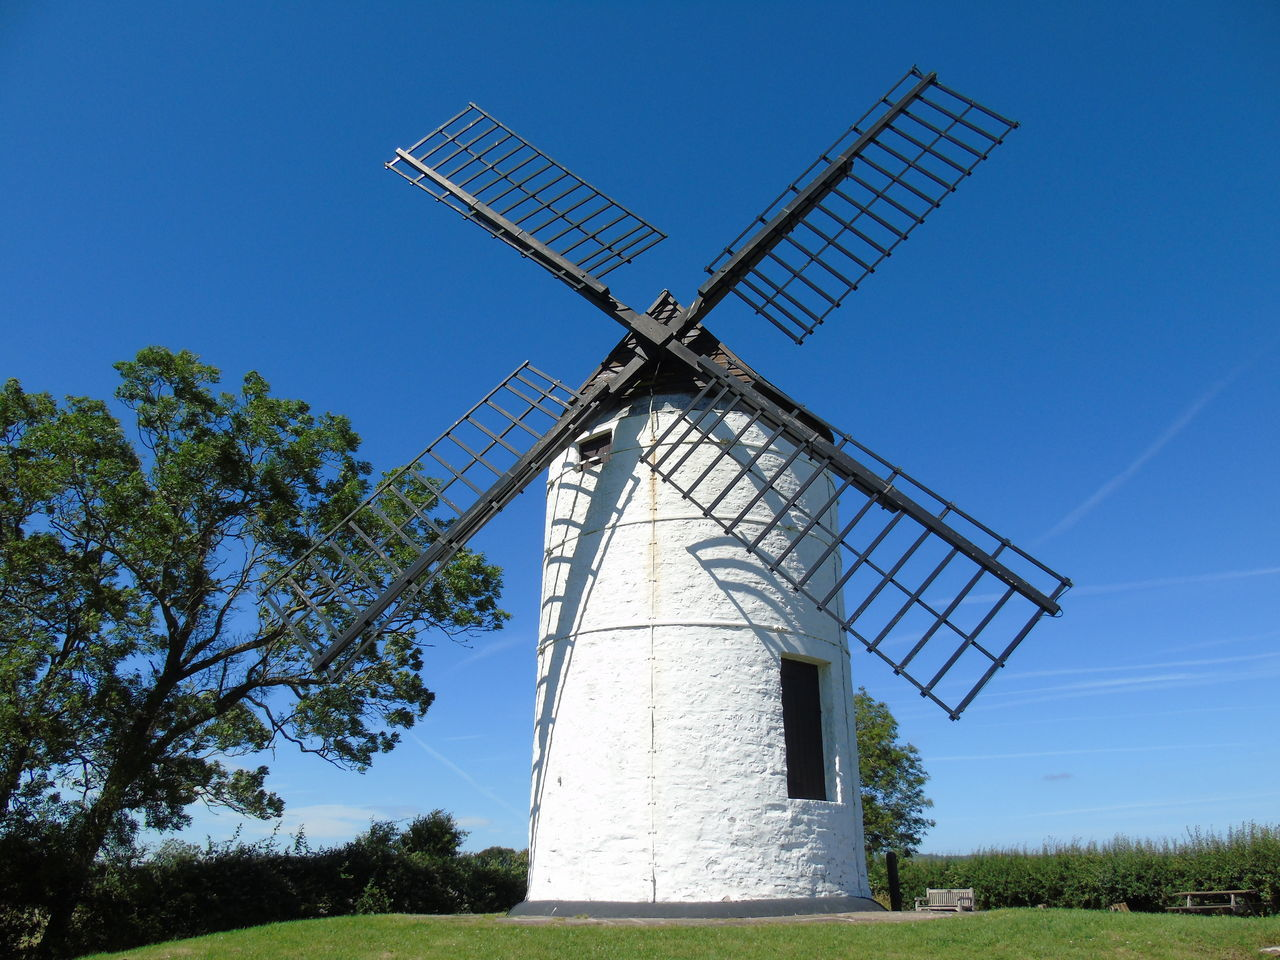 wind turbine, environmental conservation, wind power, renewable energy, alternative energy, fuel and power generation, windmill, traditional windmill, industrial windmill, field, technology, rural scene, day, nature, blue, outdoors, sustainable resources, solar panel, solar energy, no people, low angle view, tree, wind, clear sky, landscape, sky, grass, solar equipment